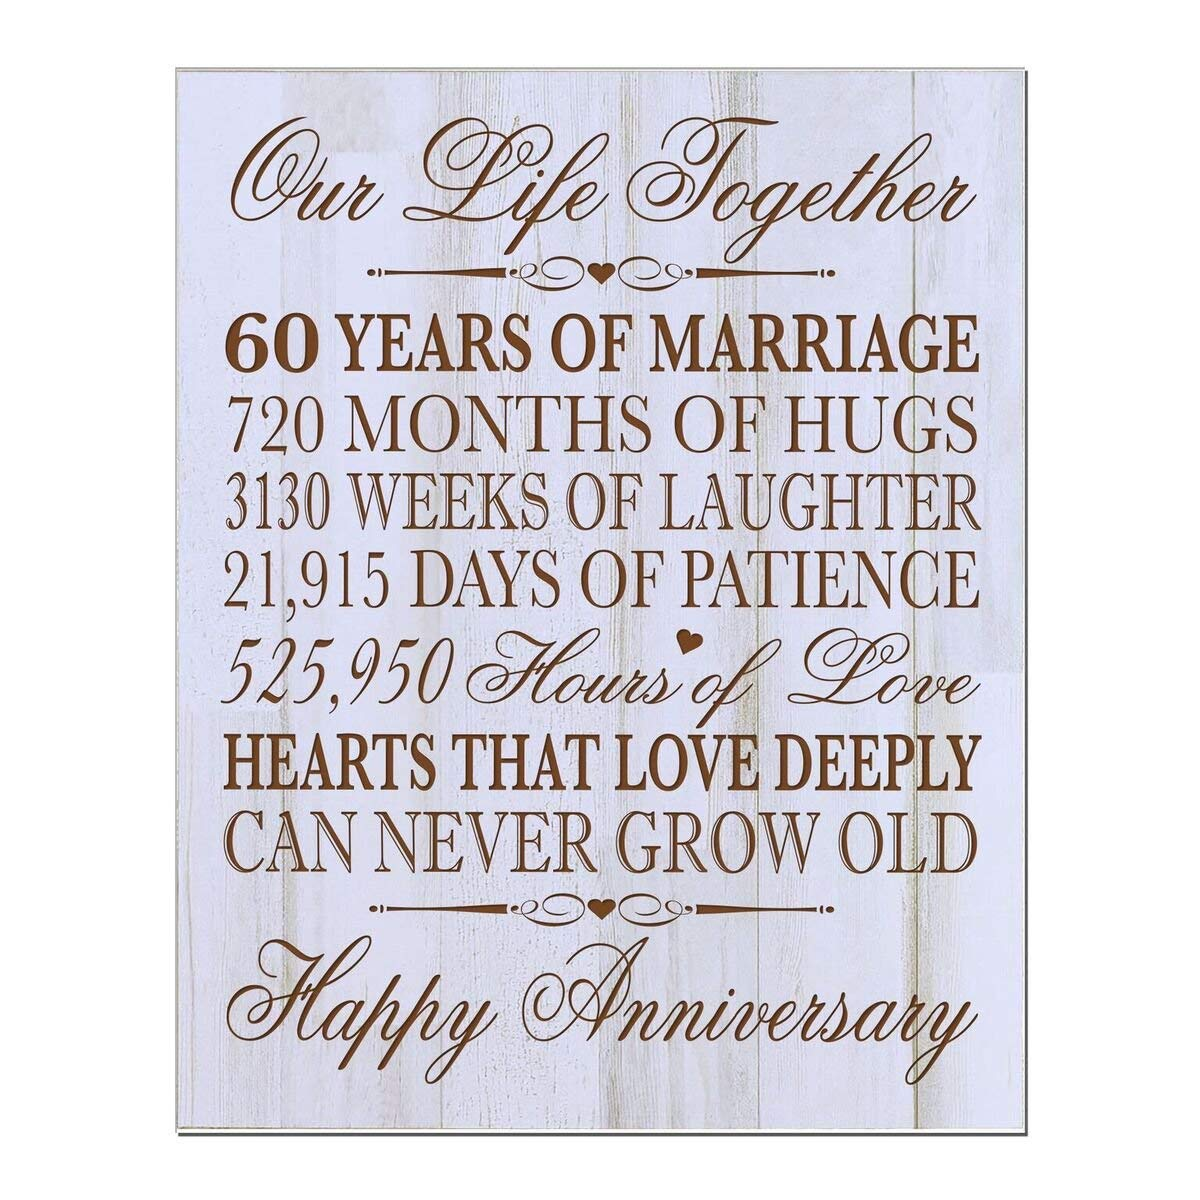 "60th Wedding Anniversary Wall Plaque Gifts for Couple, 60th Anniversary Gifts for Her,60th Wedding Anniversary Gifts for Him 12"" W X 15"" H Wall Plaque By LifeSong Milestones (Distressed wood)"